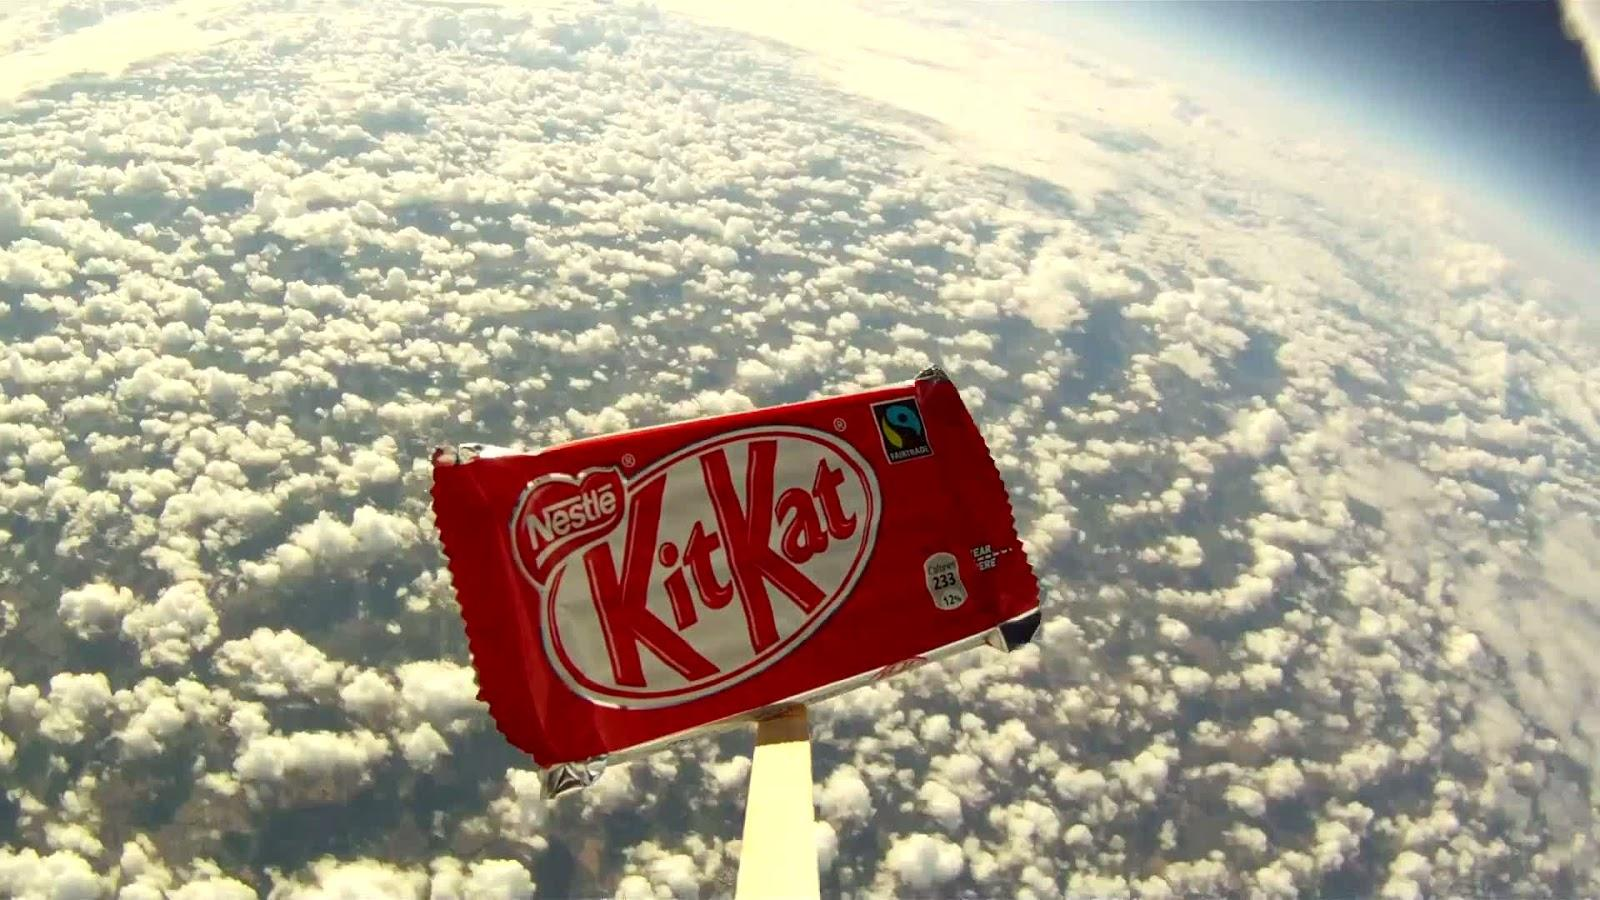 All HD Wallpapers: Kit Kat Chocolate Wallpapers in HD